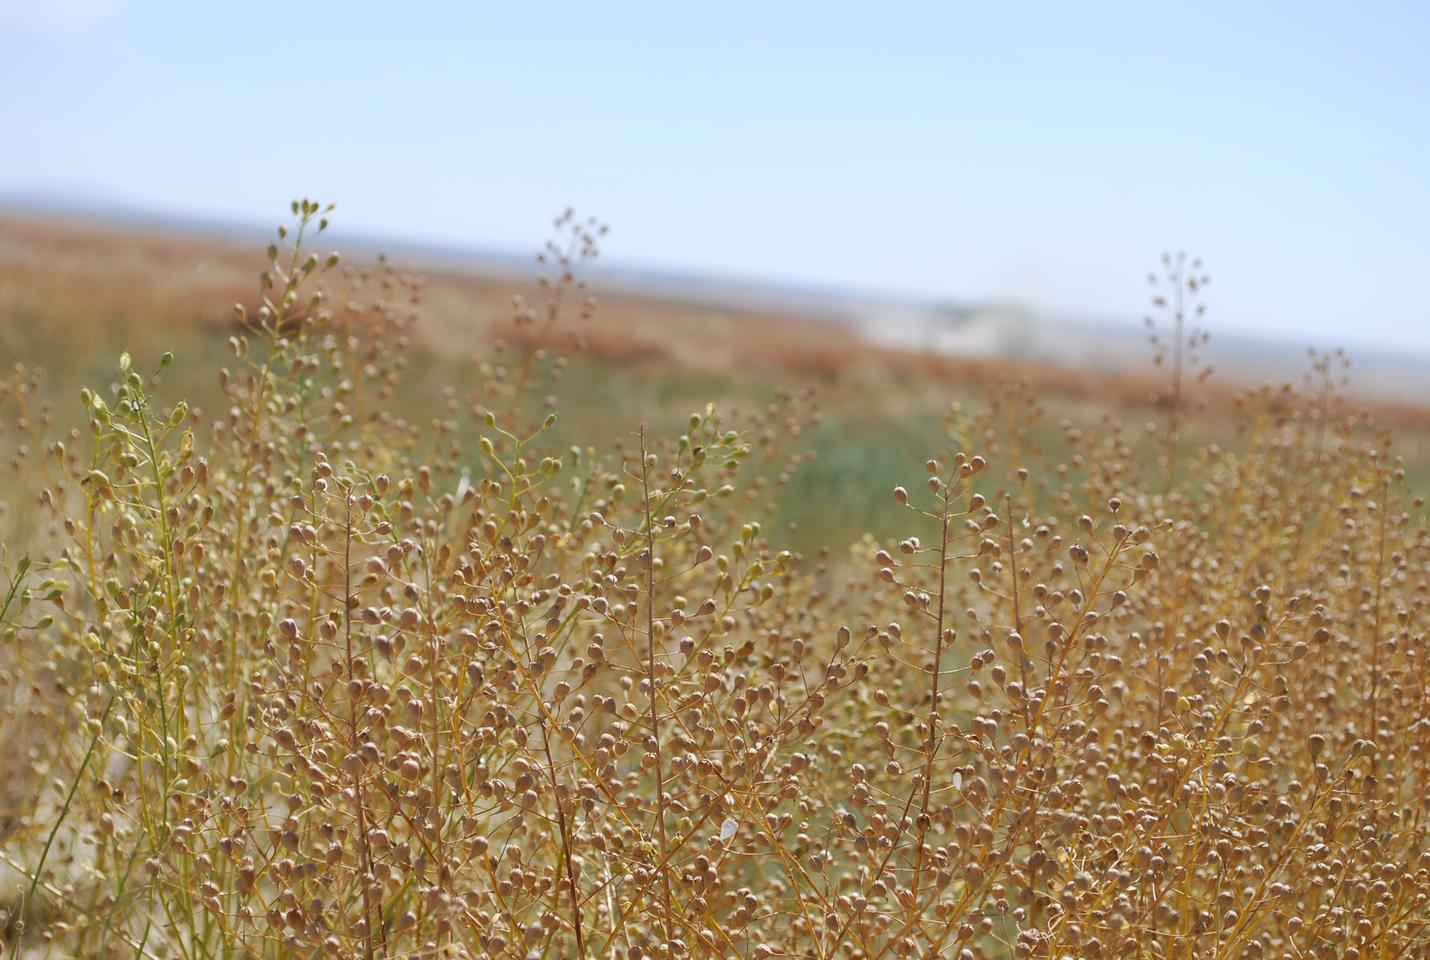 Camelina is a dedicated energy crop that grows in rotation with wheat avoiding competition with food crops